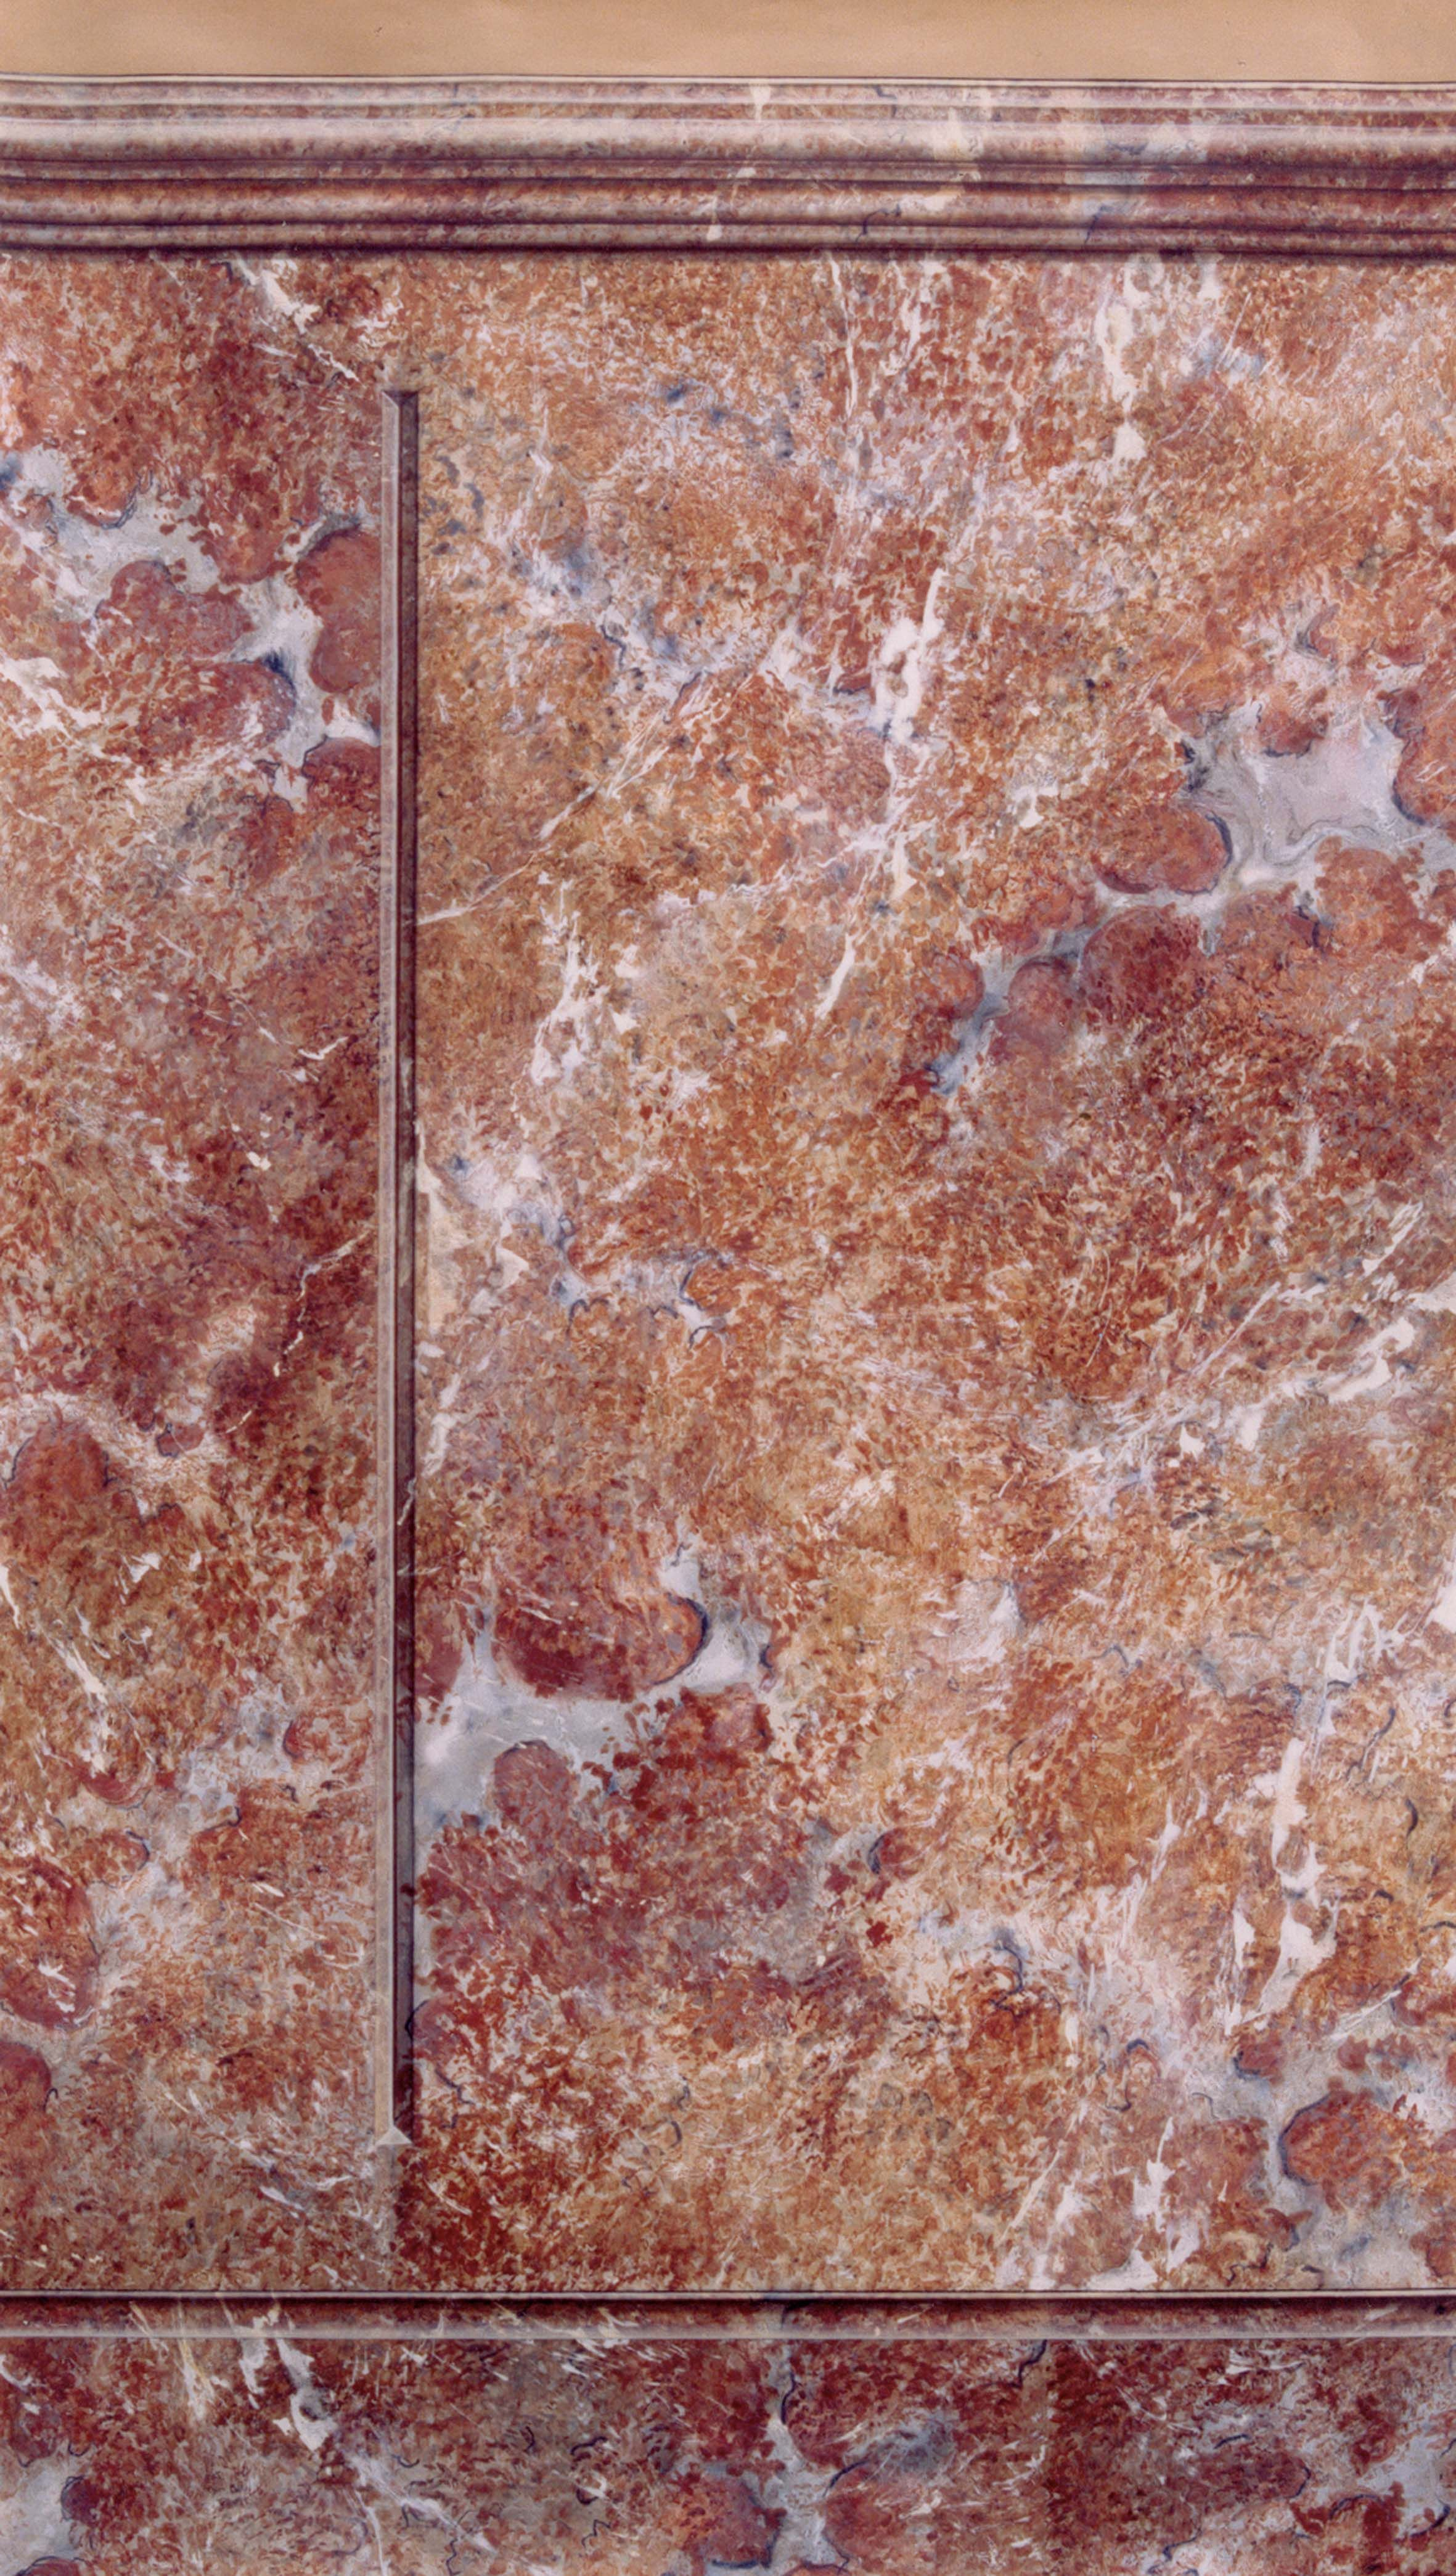 Cerfontaine - Faux Marbre And Ornements - Pinterest - Marbles